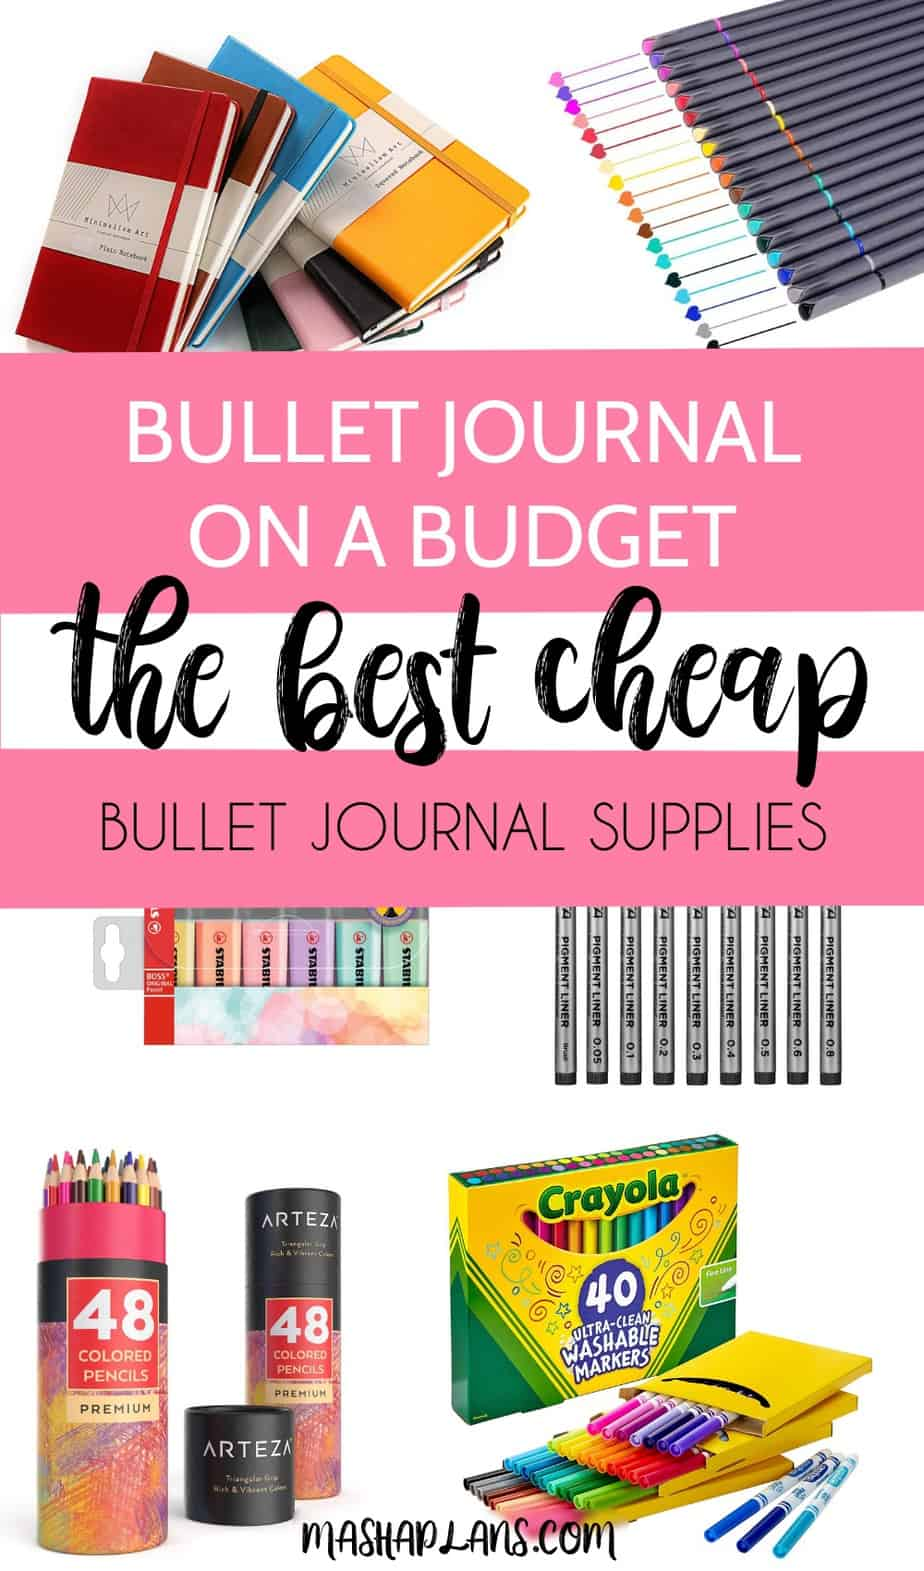 Bullet Journal On A Budget: The Best Cheap Bullet Journal Supplies | Masha Plans